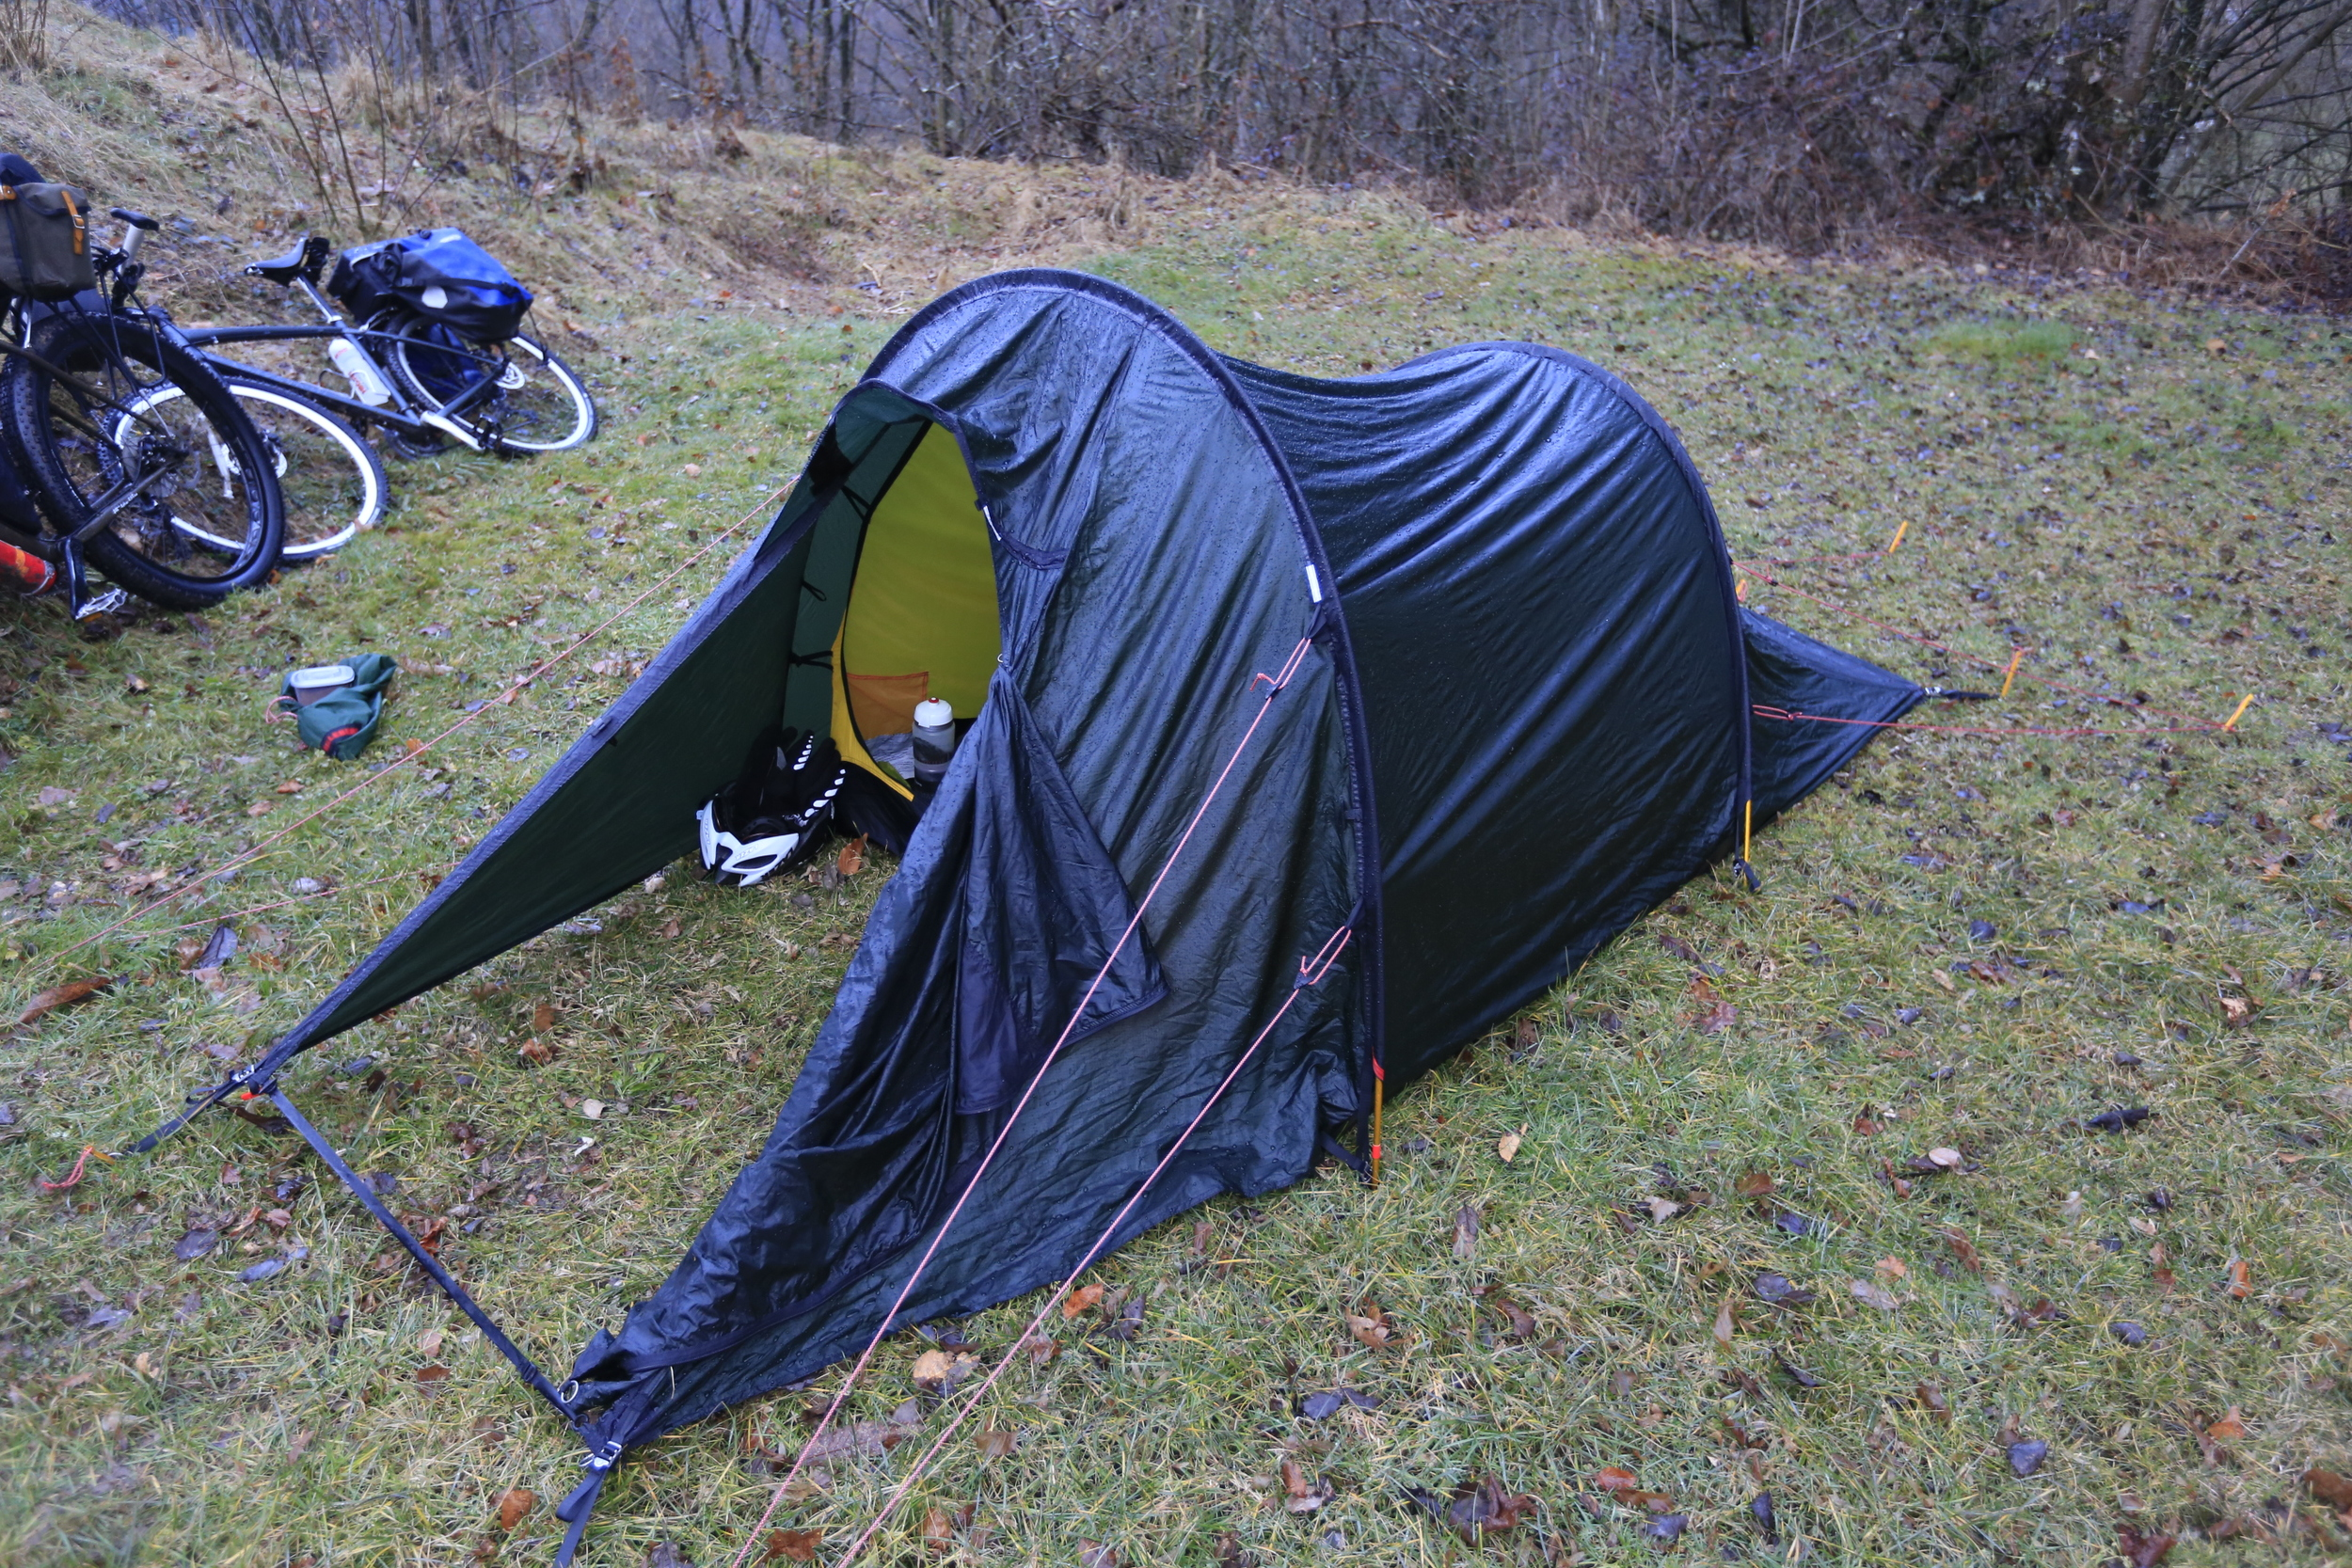 The   Hilleberg Nallo 2   took a night of torrential rain in its stride.